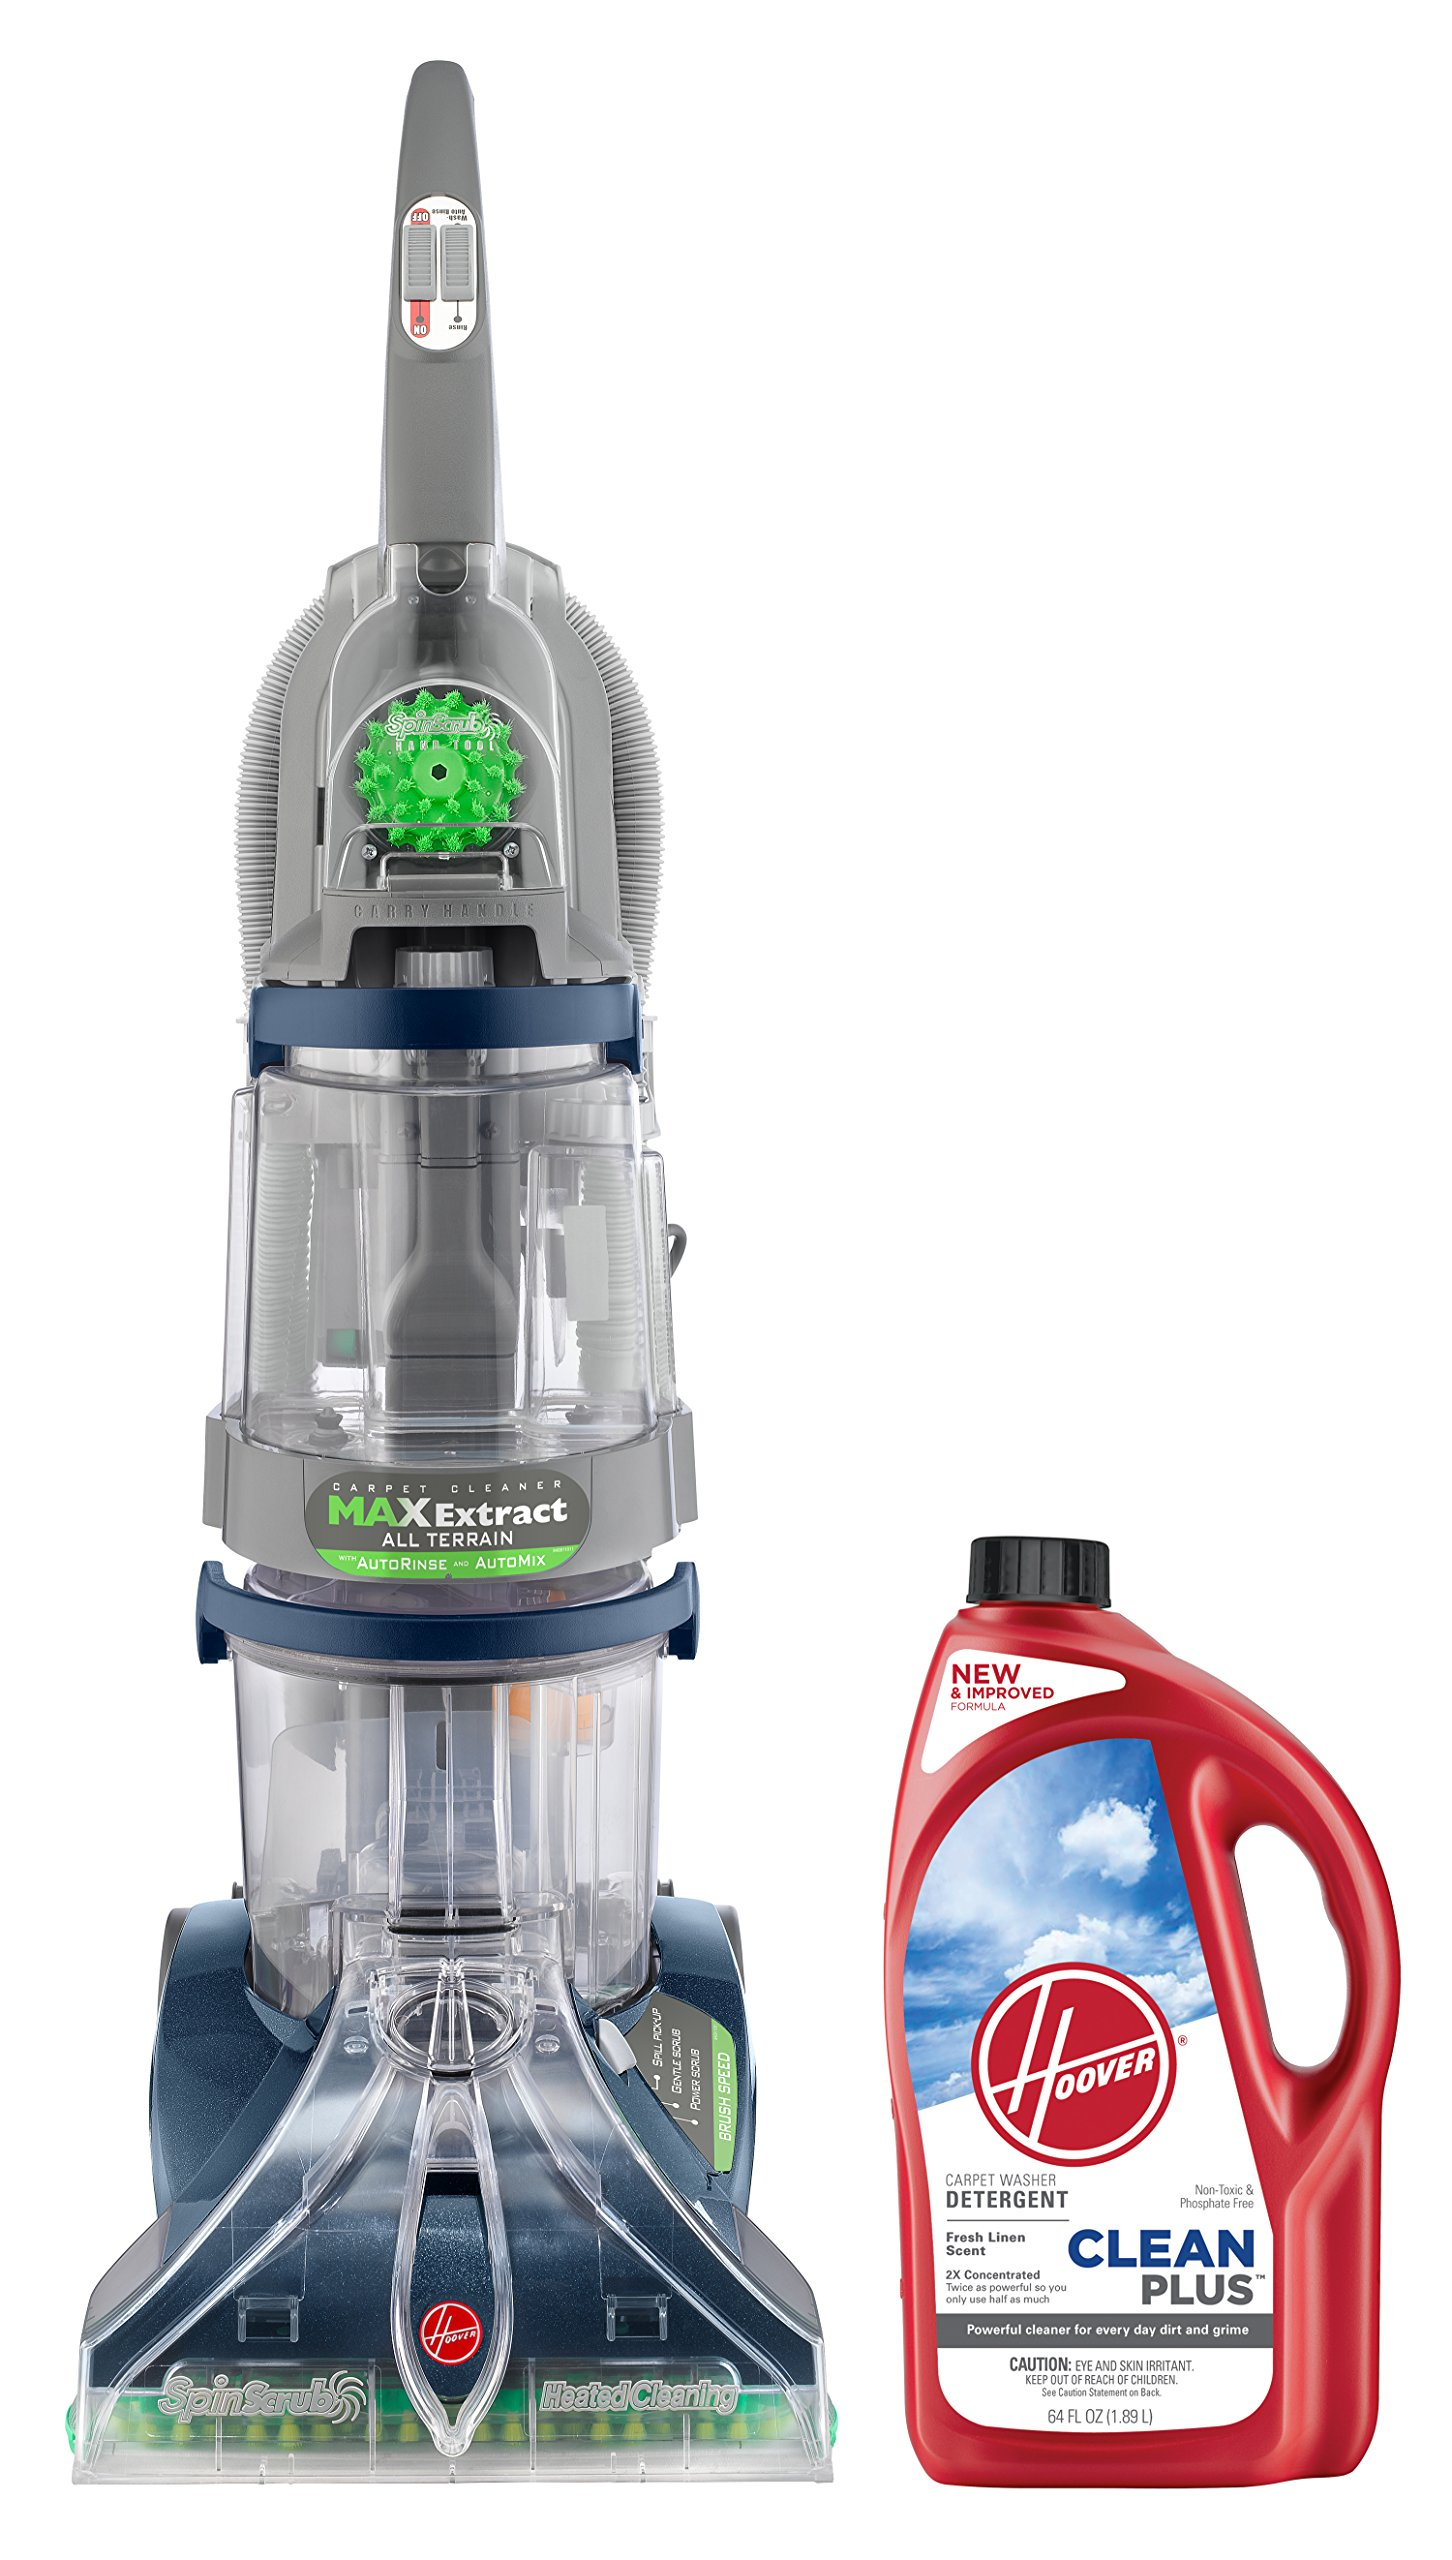 Hoover Max Extract Dual V All Terrain Carpet Washer, F7452900PC and Hoover CLEANPLUS 2X 64oz Carpet Cleaner and Deodorizer, AH30330 Bundle